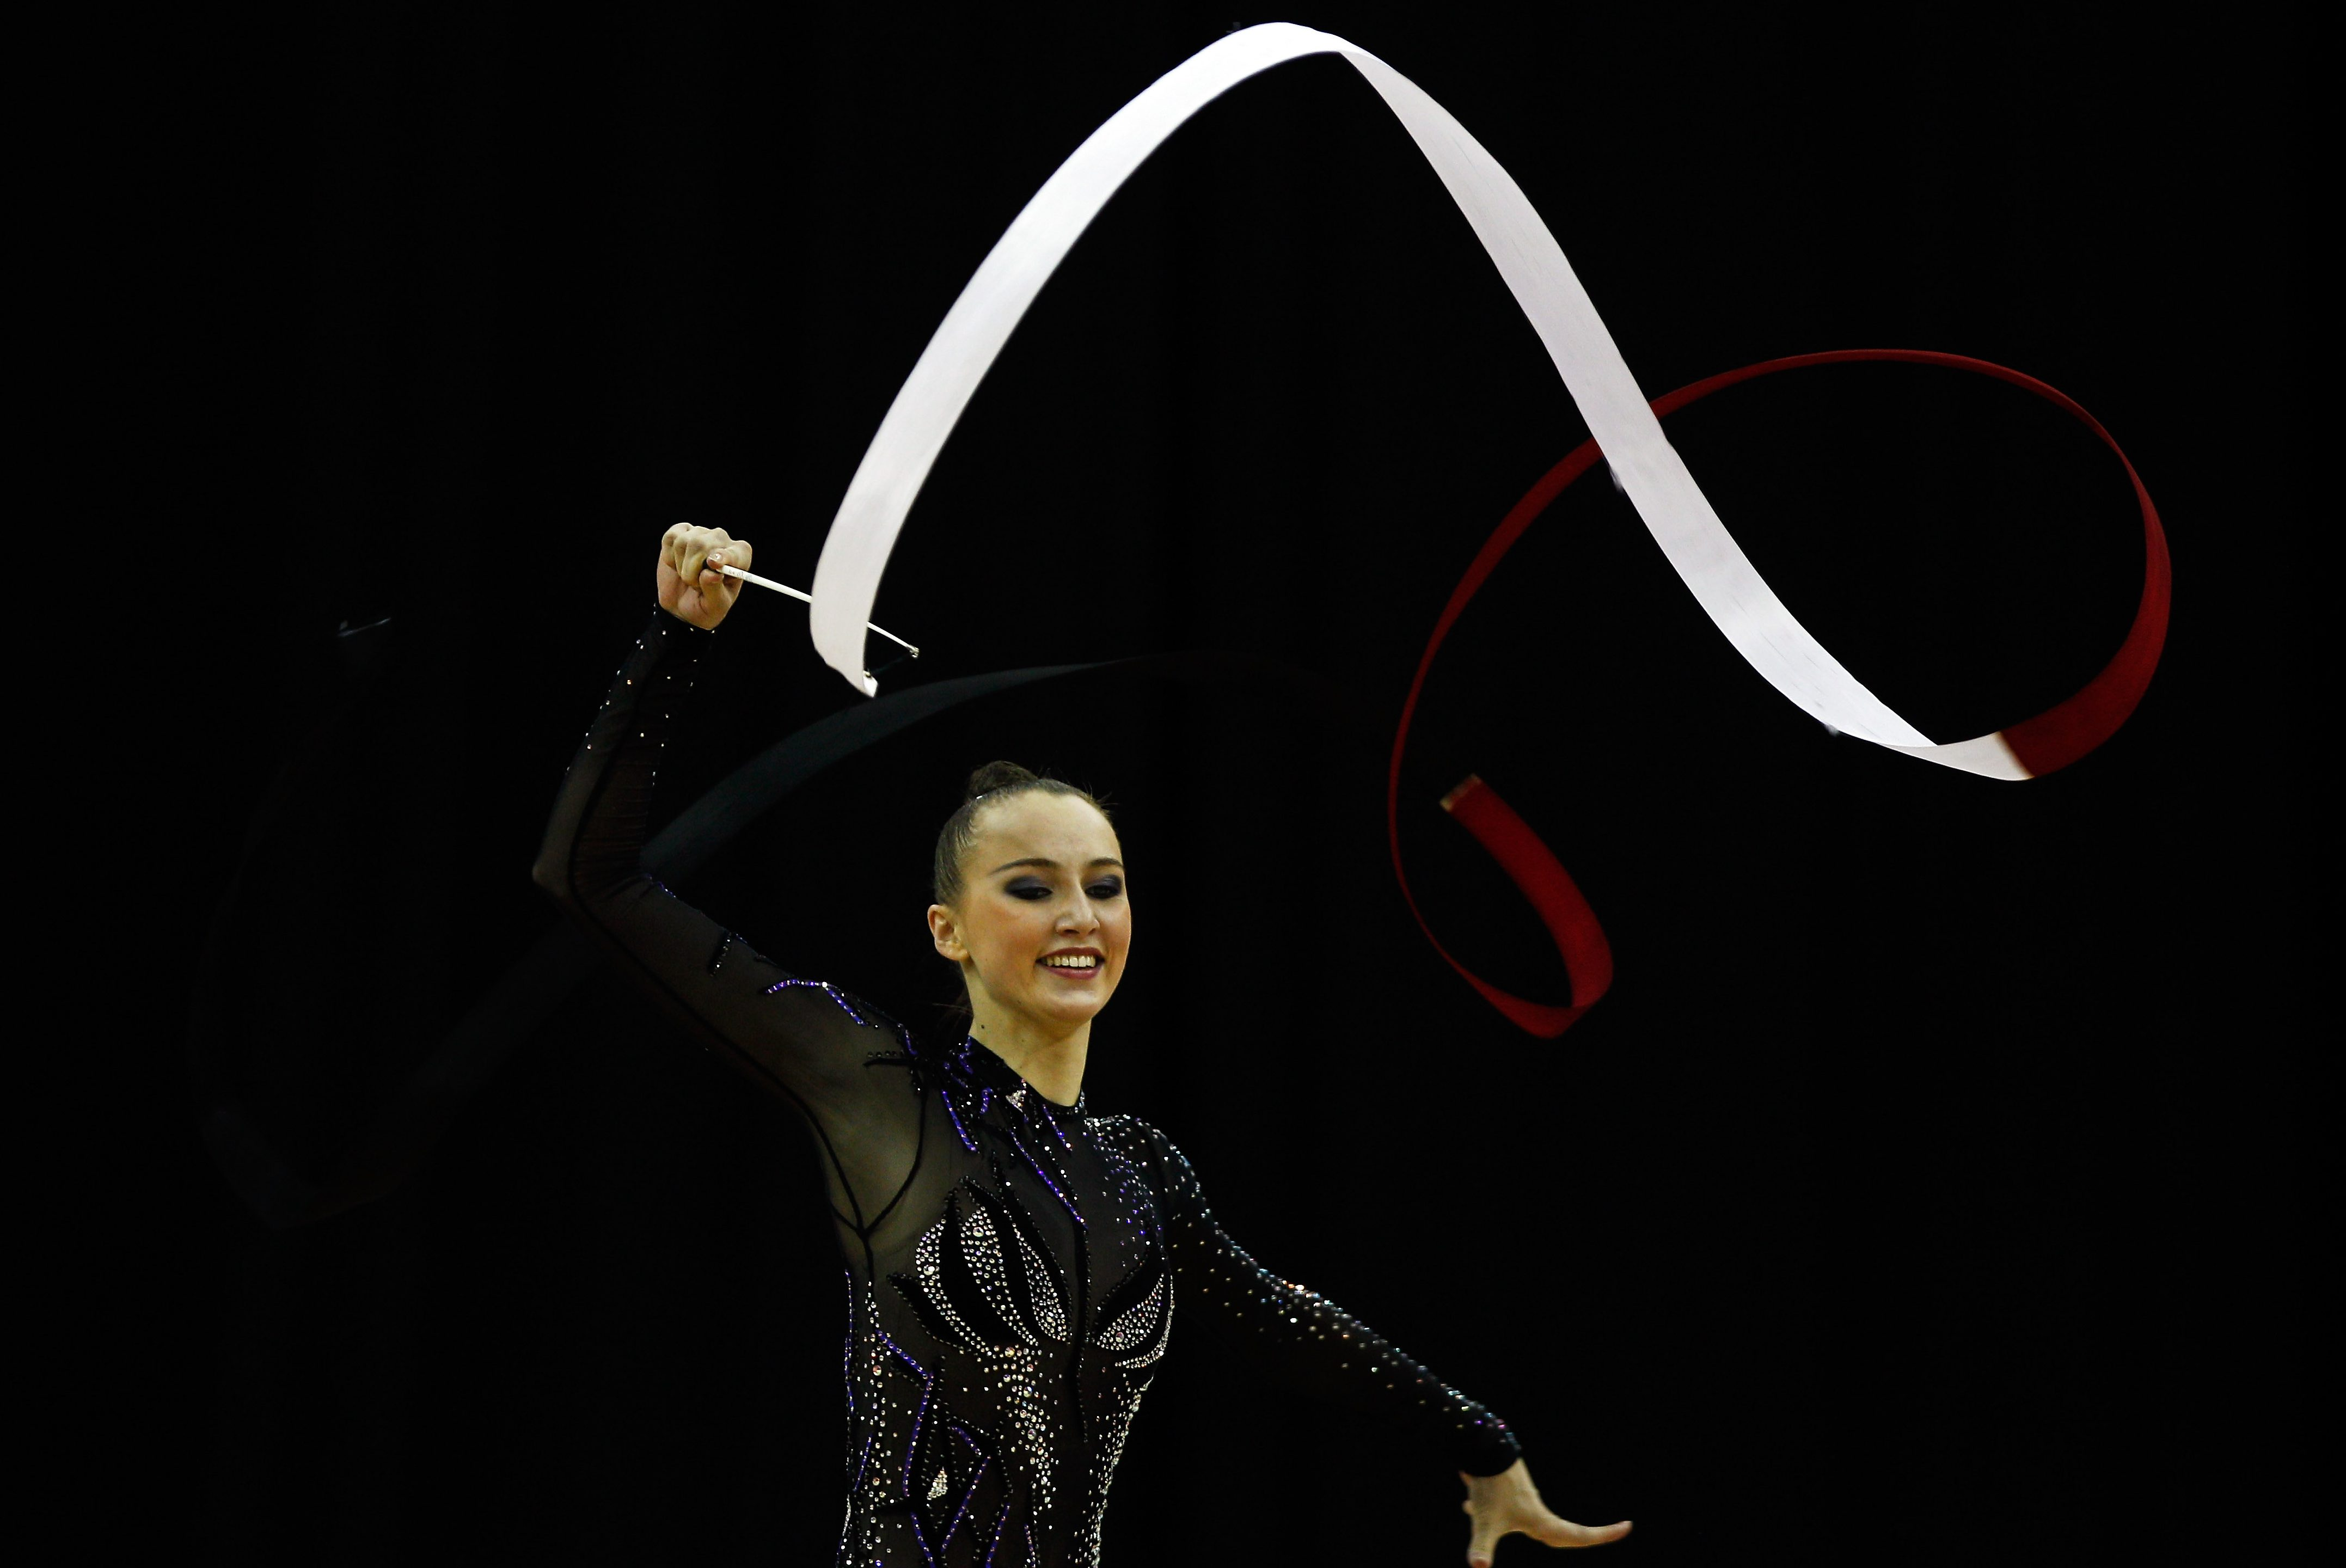 LONDON, ENGLAND - JANUARY 18:  Ganna Rizatdinova of Ukraine in action in the Individual All-Around during the FIG Rhythmic Gymnastics Olympic Qualification round at North Greenwich Arena on January 18, 2012 in London, England.  (Photo by Paul Gilham/Getty Images)